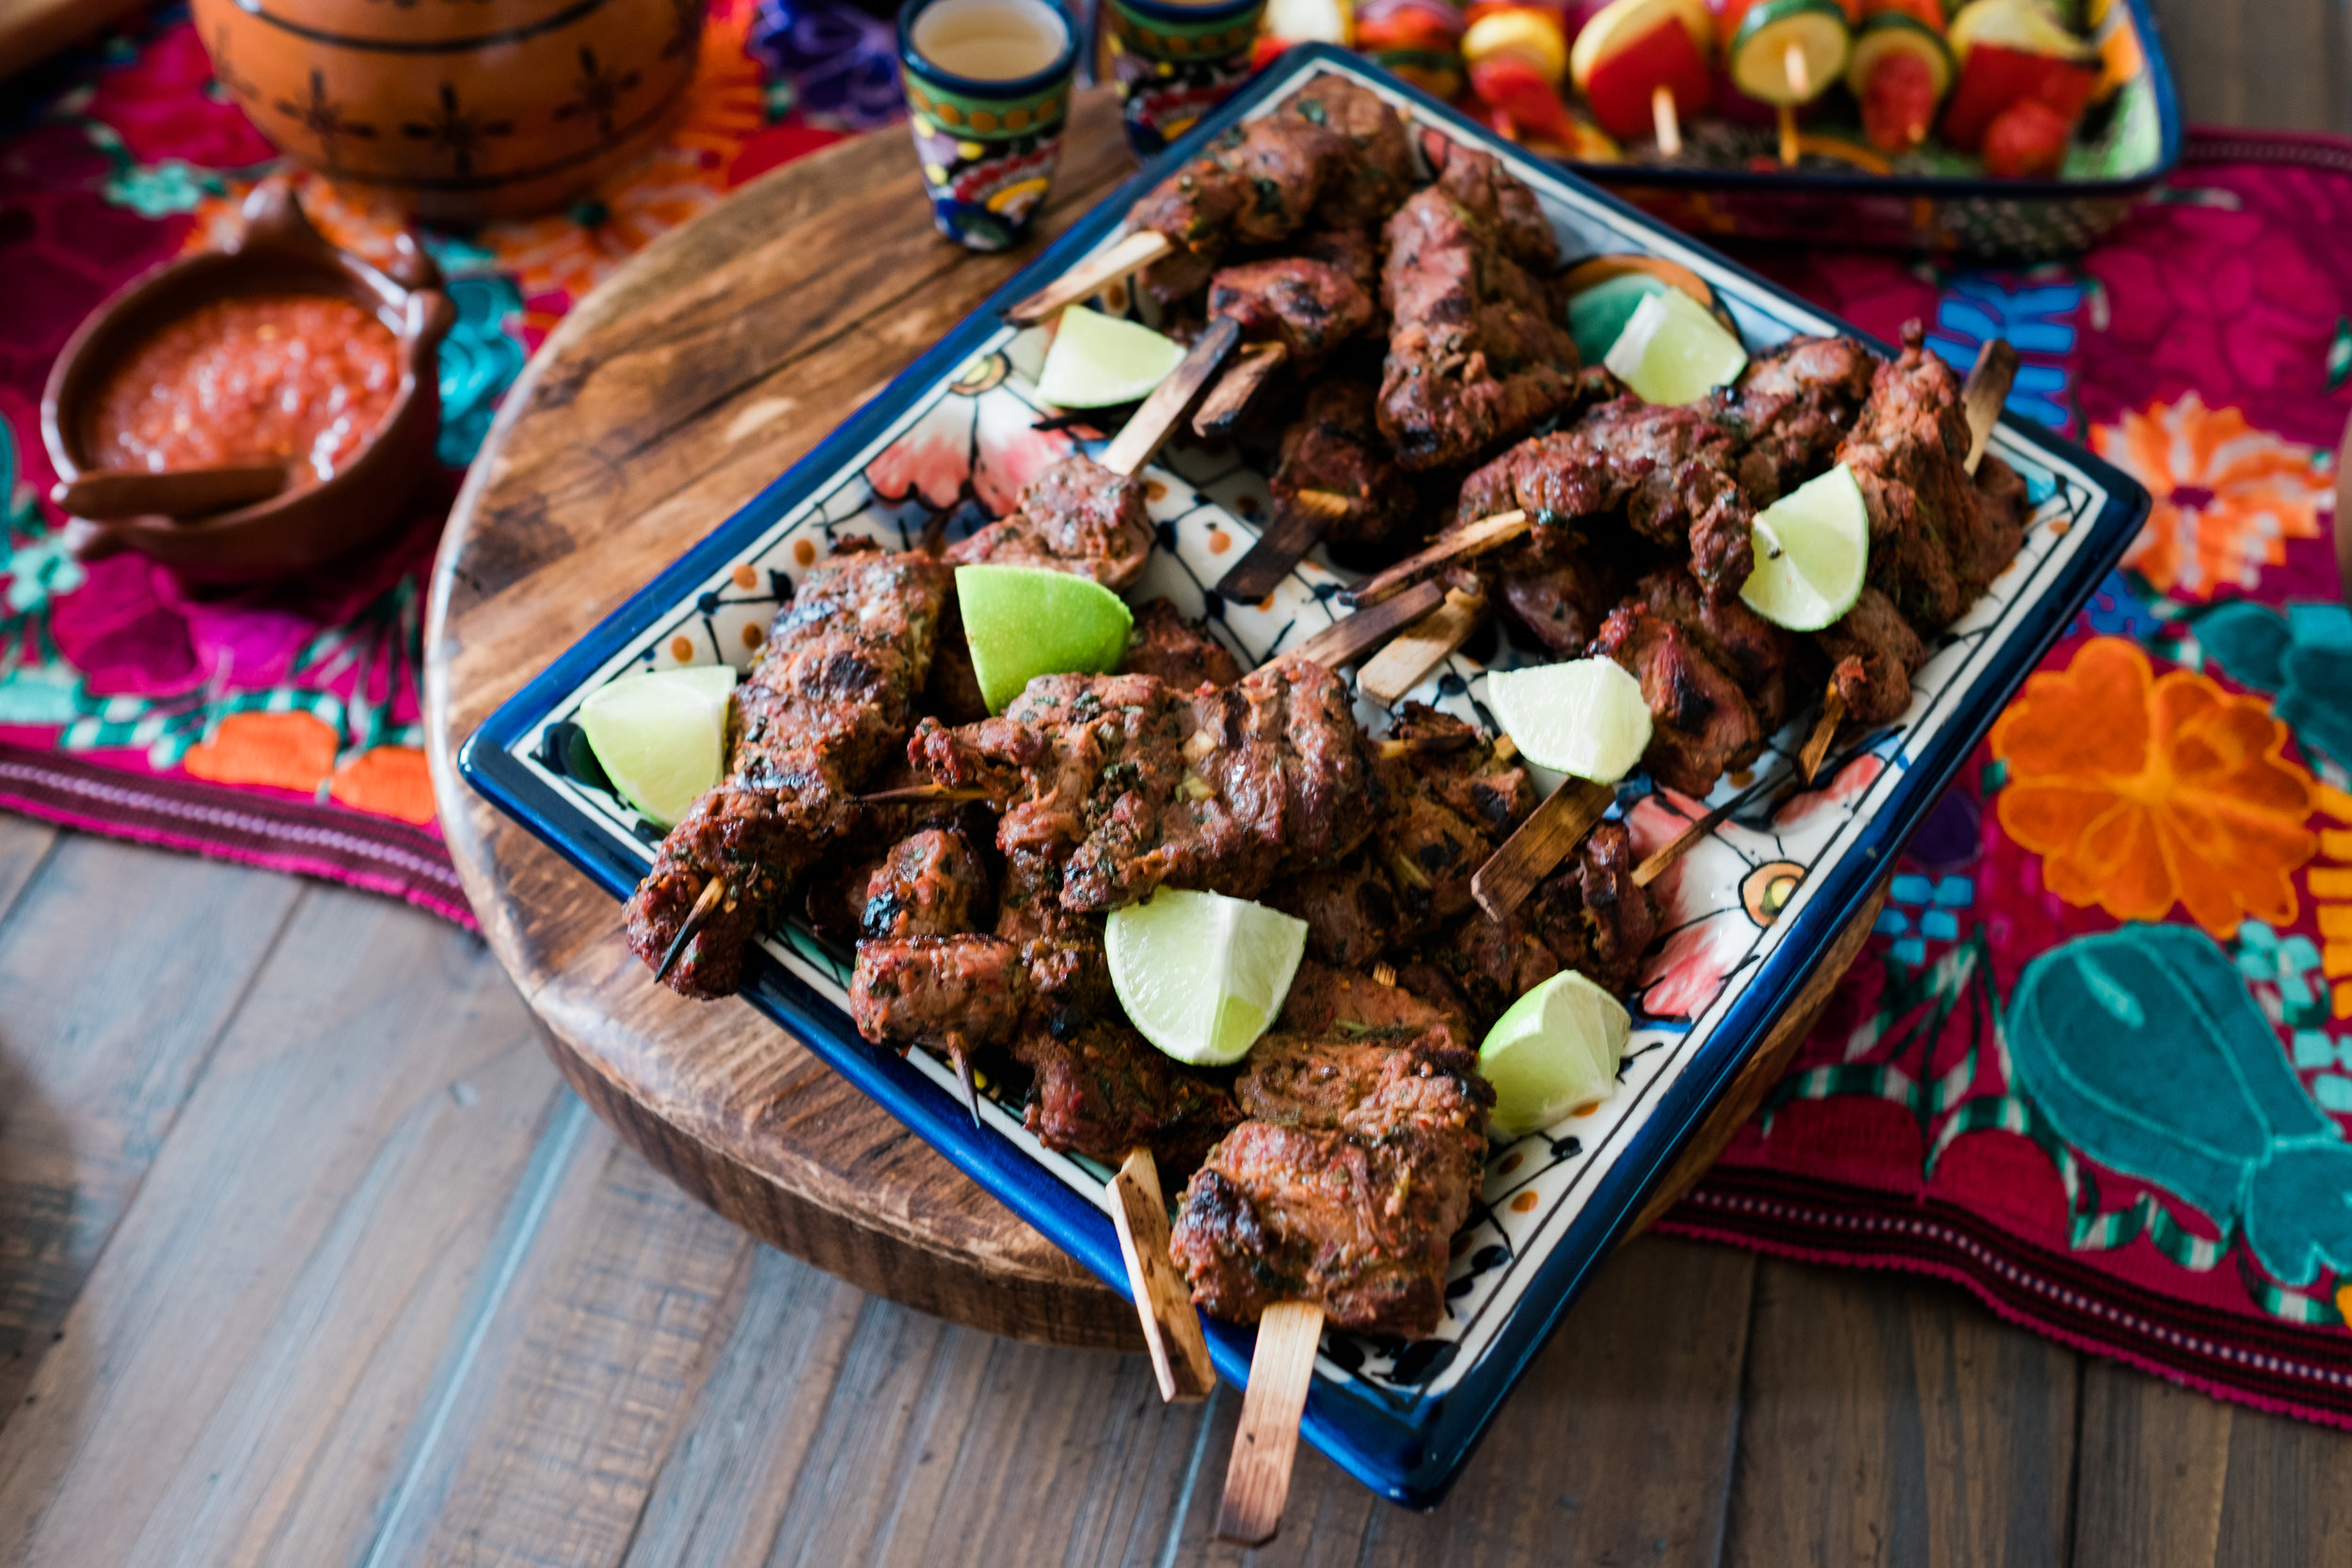 Yvette's Tequila Lime Carne Asada Skewers were so tender and delicious! See the caption below Yvette's photo for this amazing recipe.